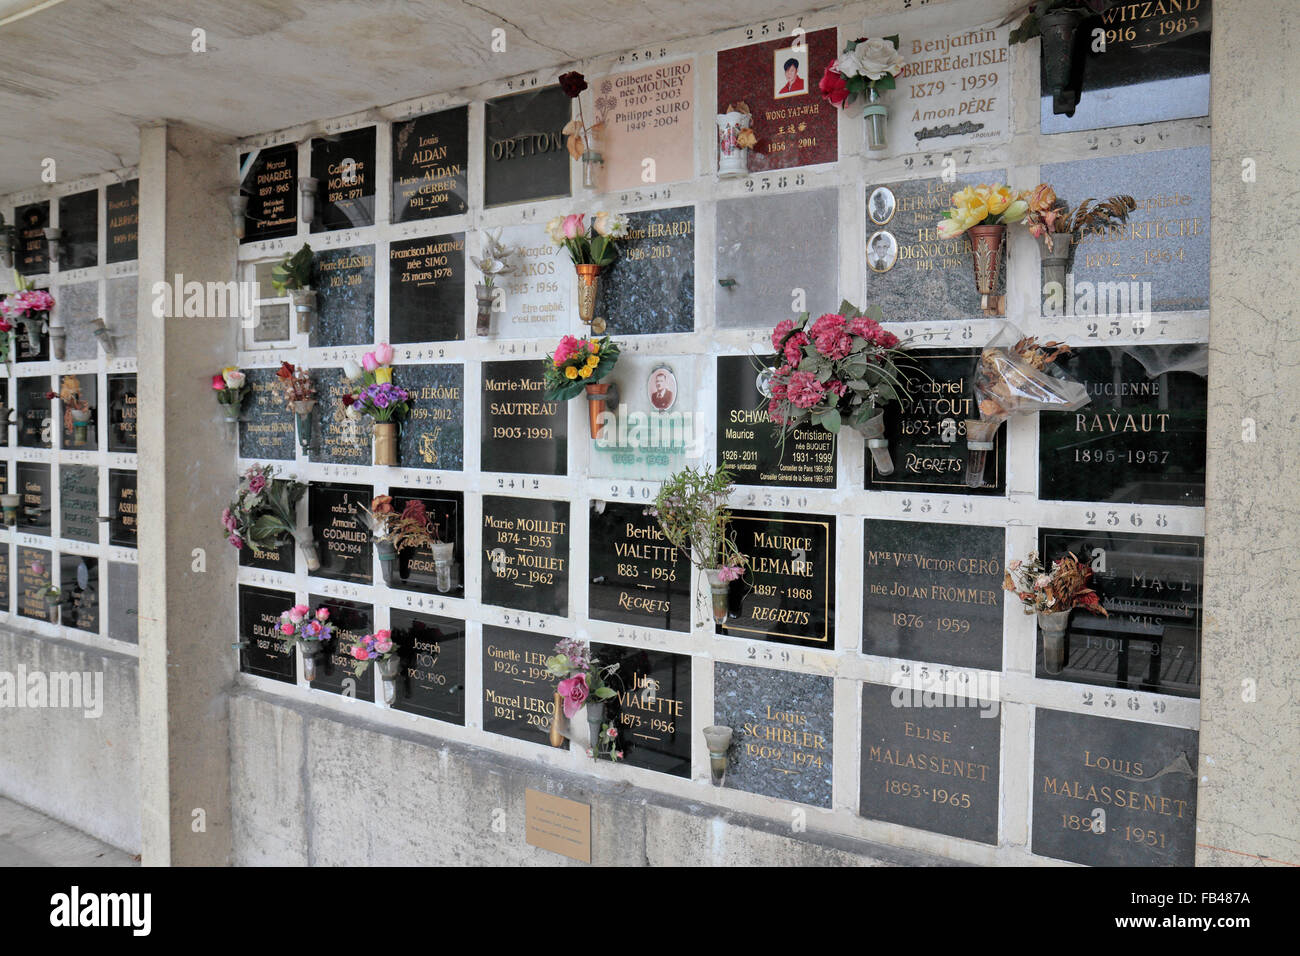 Nameplates over the cinerary urns Columbarium in the Père Lachaise Cemetery, Paris, France. - Stock Image